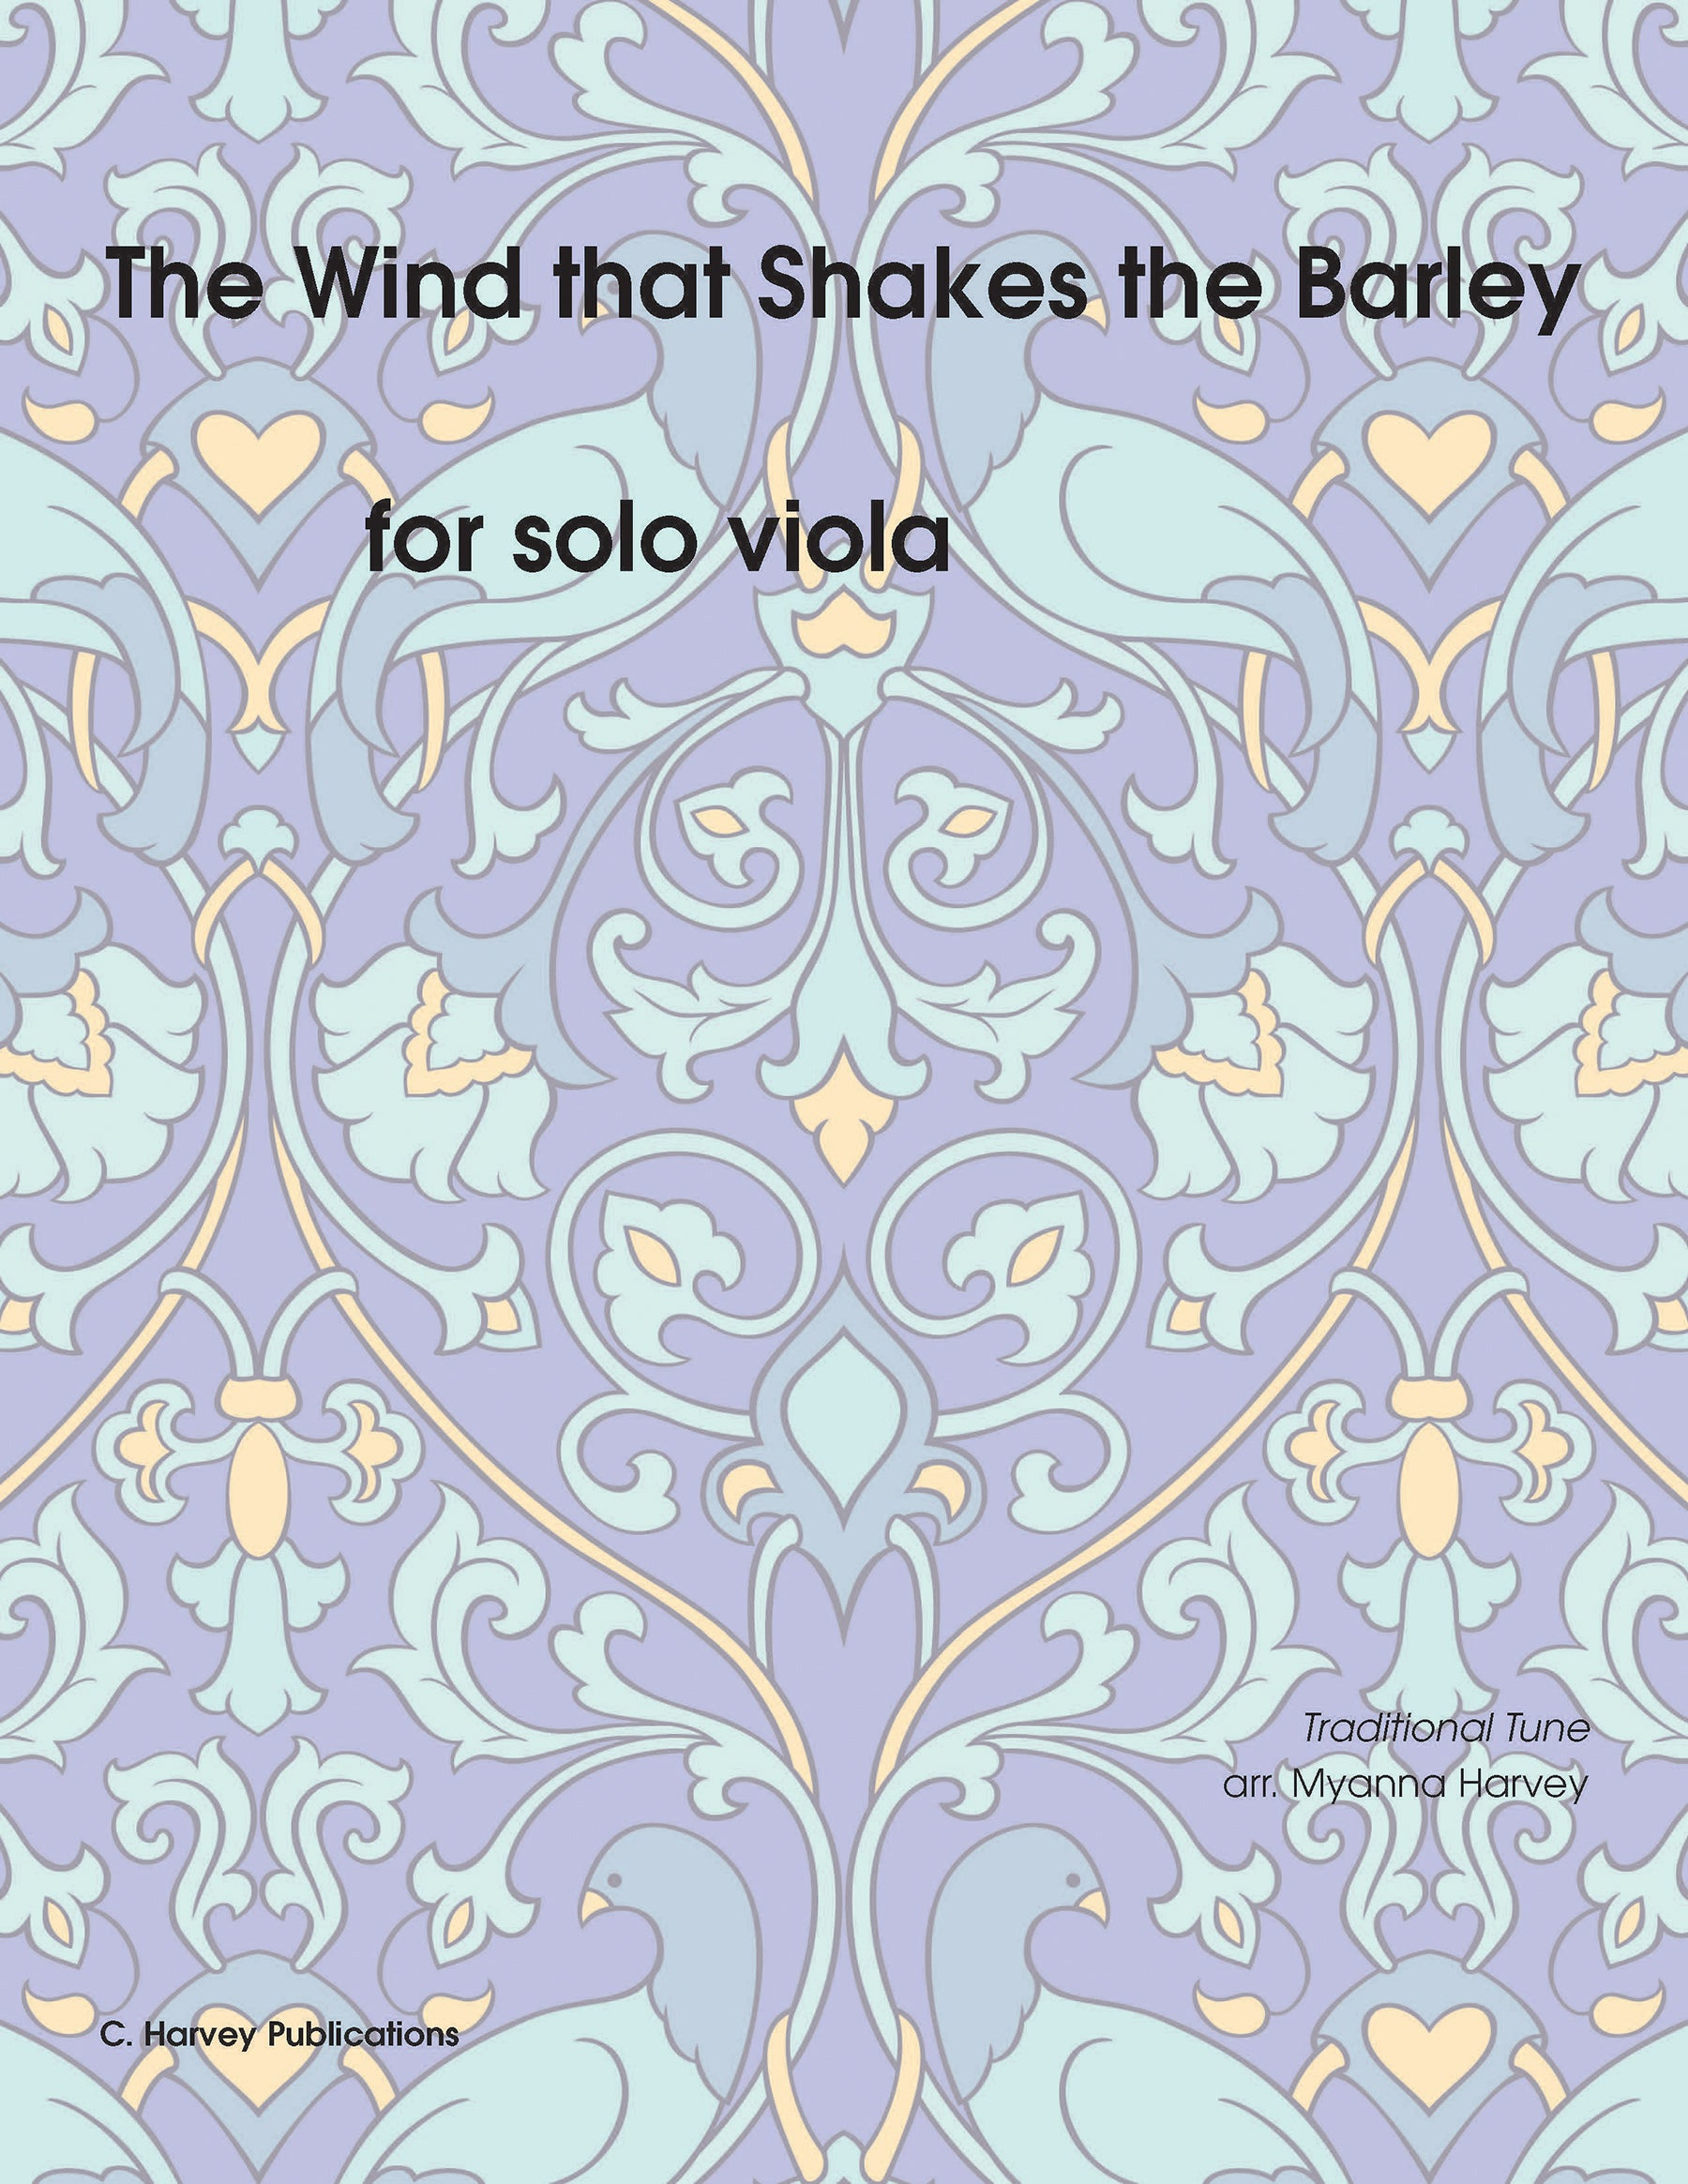 The Wind that Shakes the Barley for Solo Viola - Variations on an Unaccompanied Fiddle Tune - PDF download